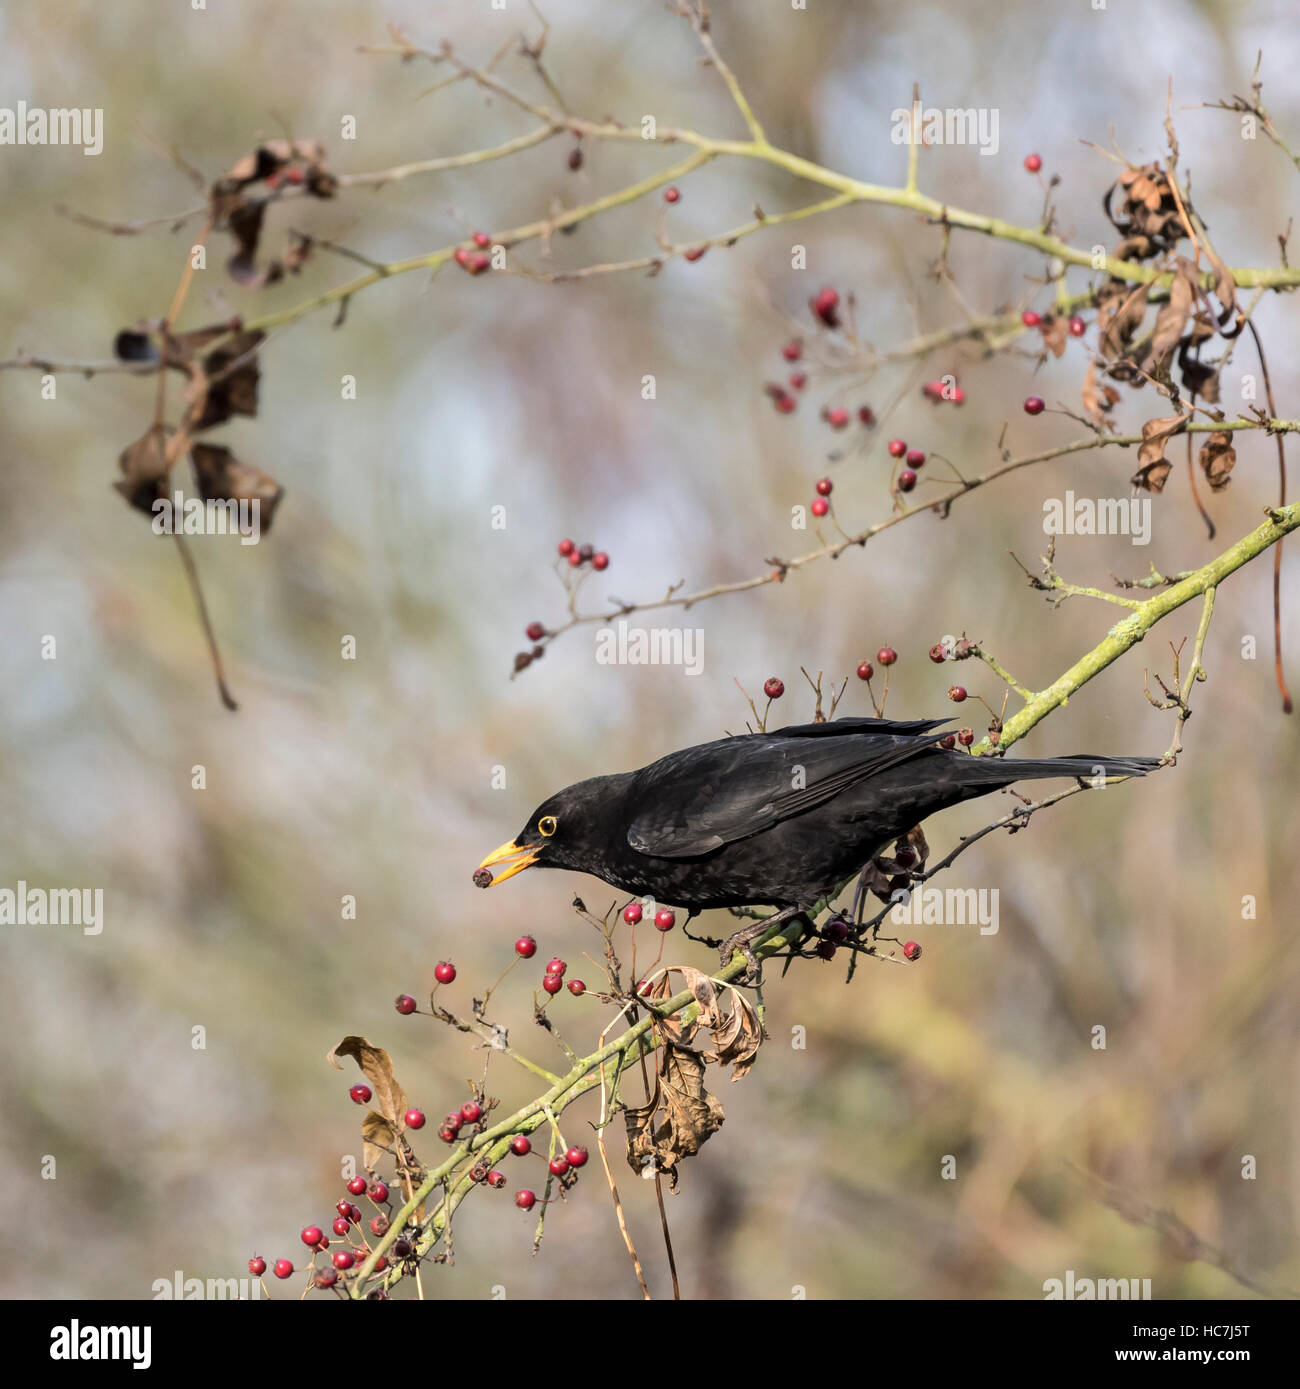 blackbird-on-branch-feeding-on-berries-i